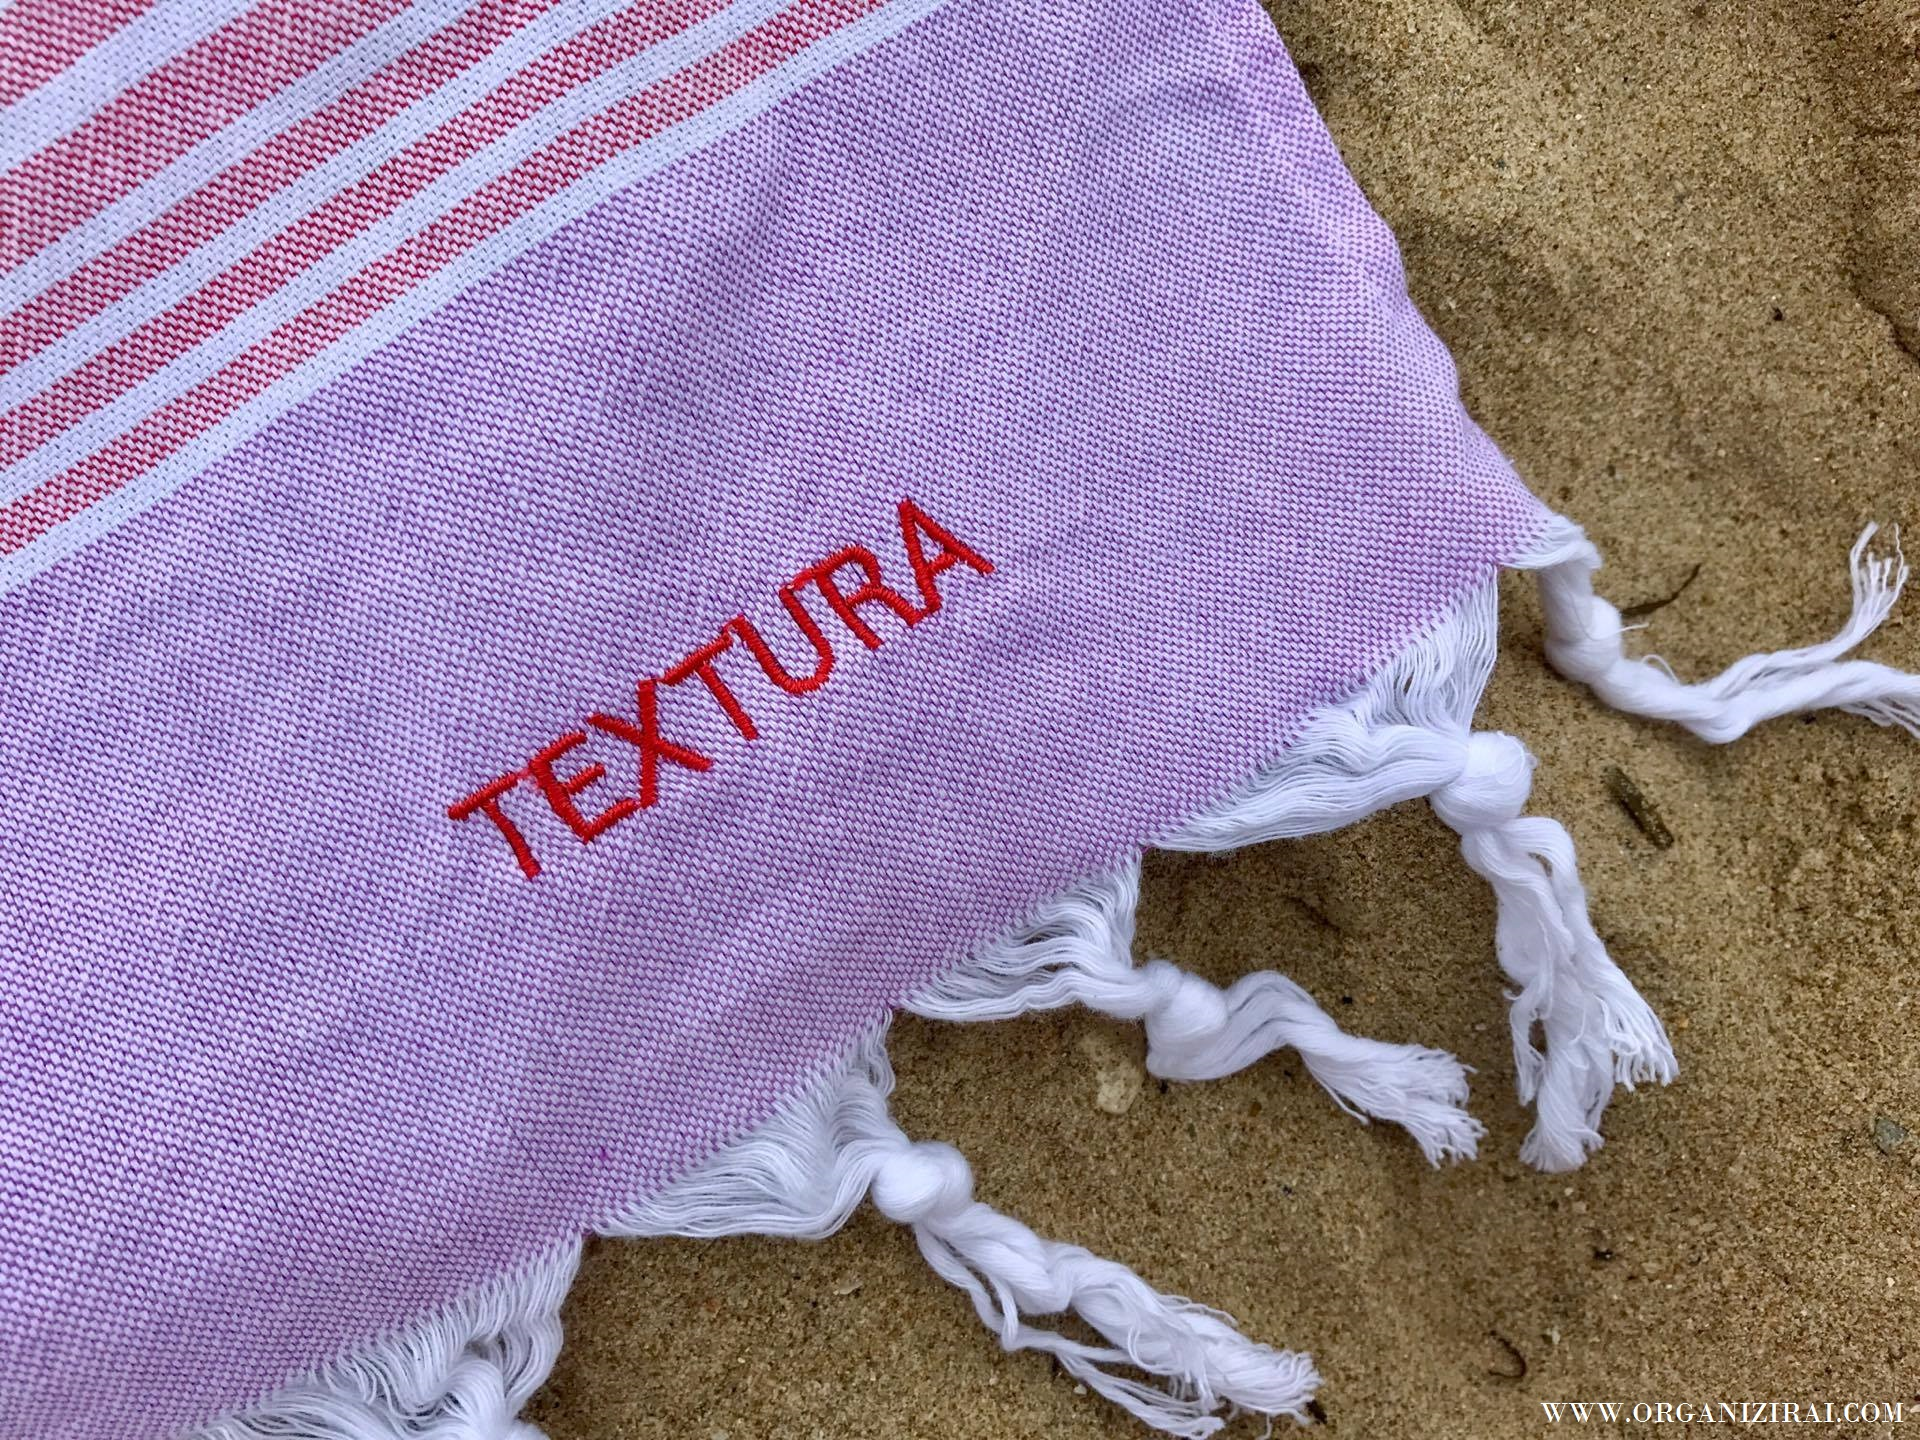 textura-beach-towel-ultra-thin-whats-in-my-beach-bag-organizing-blog-bulgarian-blogger-summer-bag-organizirai.com